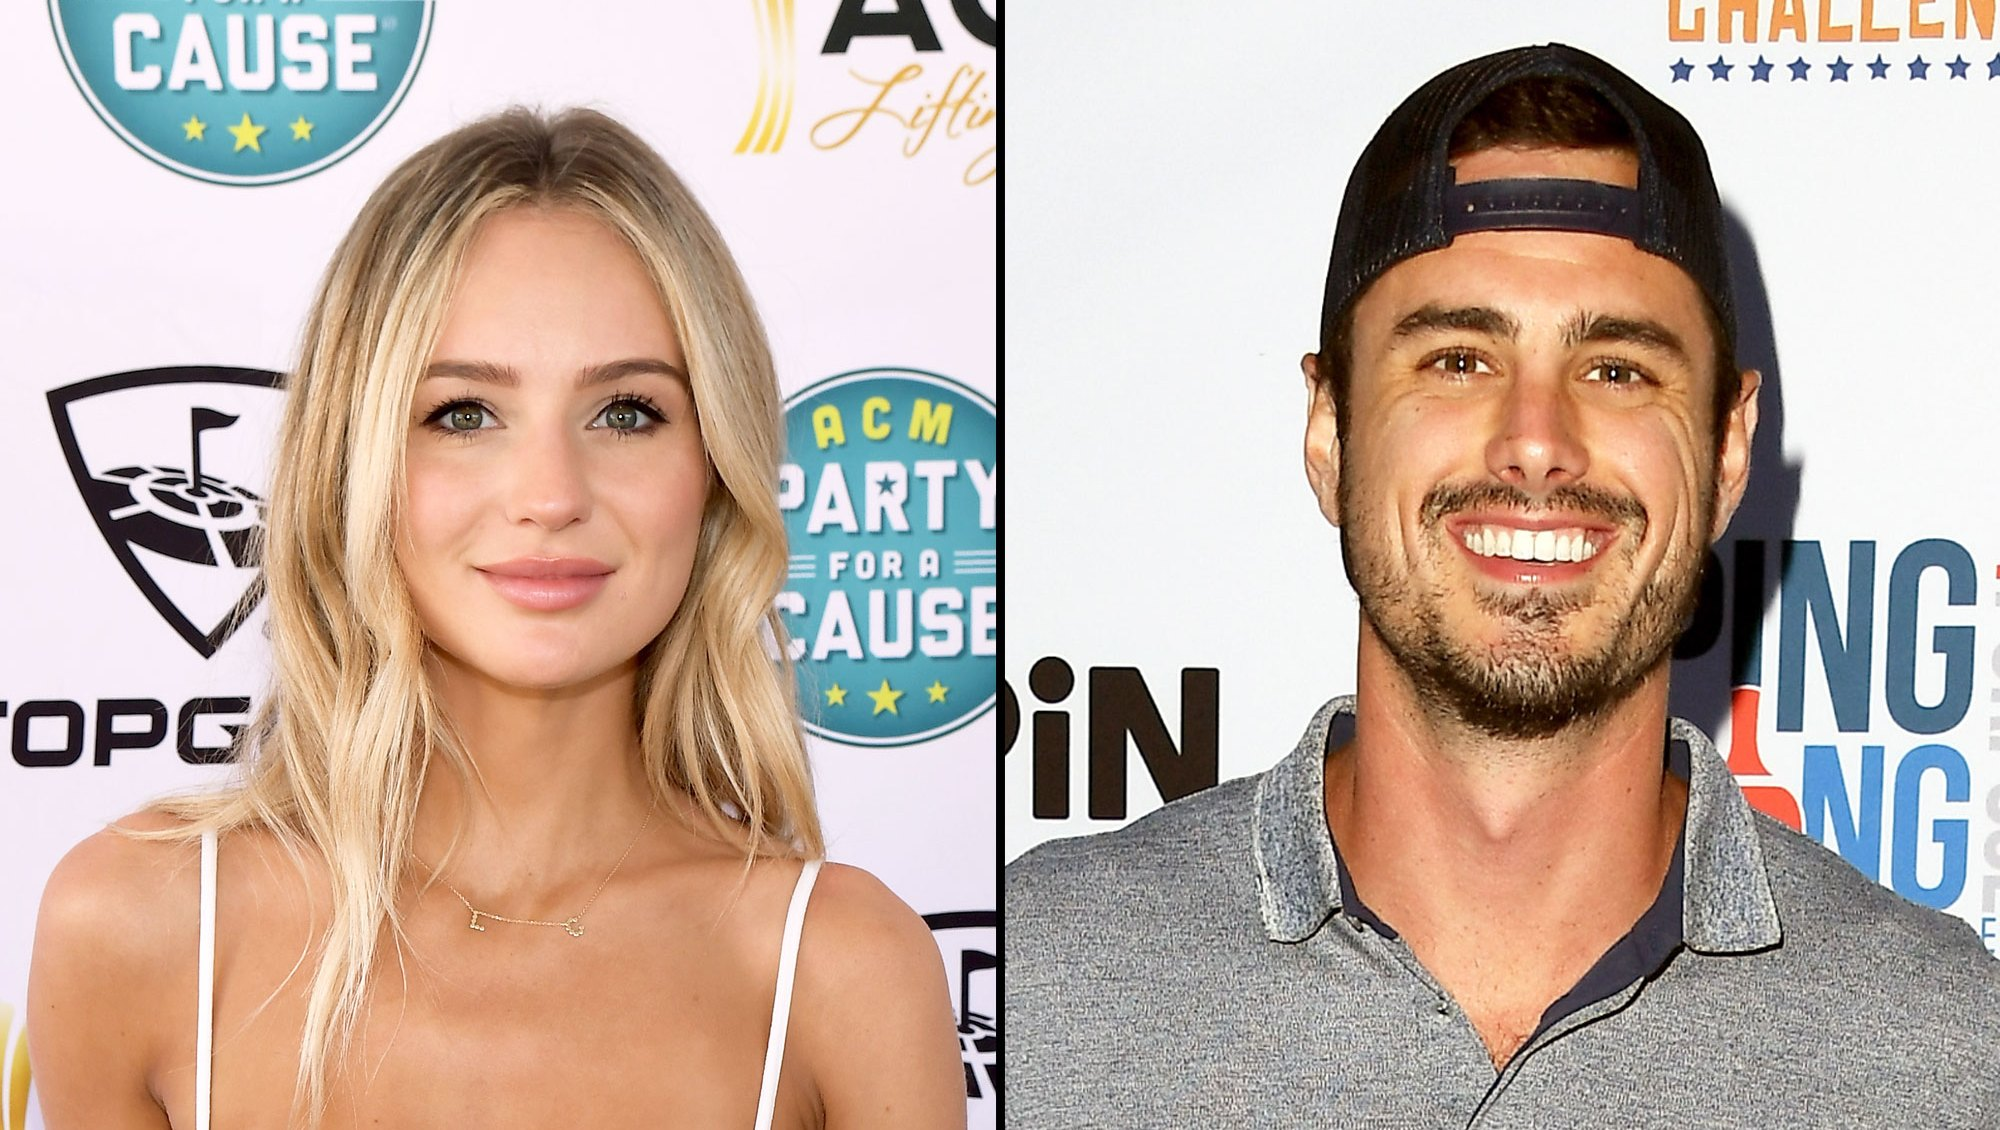 Lauren Bushnell Says She Might 'Bump Into' Ex-Fiance Ben Higgins and His New Girlfriend Jessica Clarke in Nashville